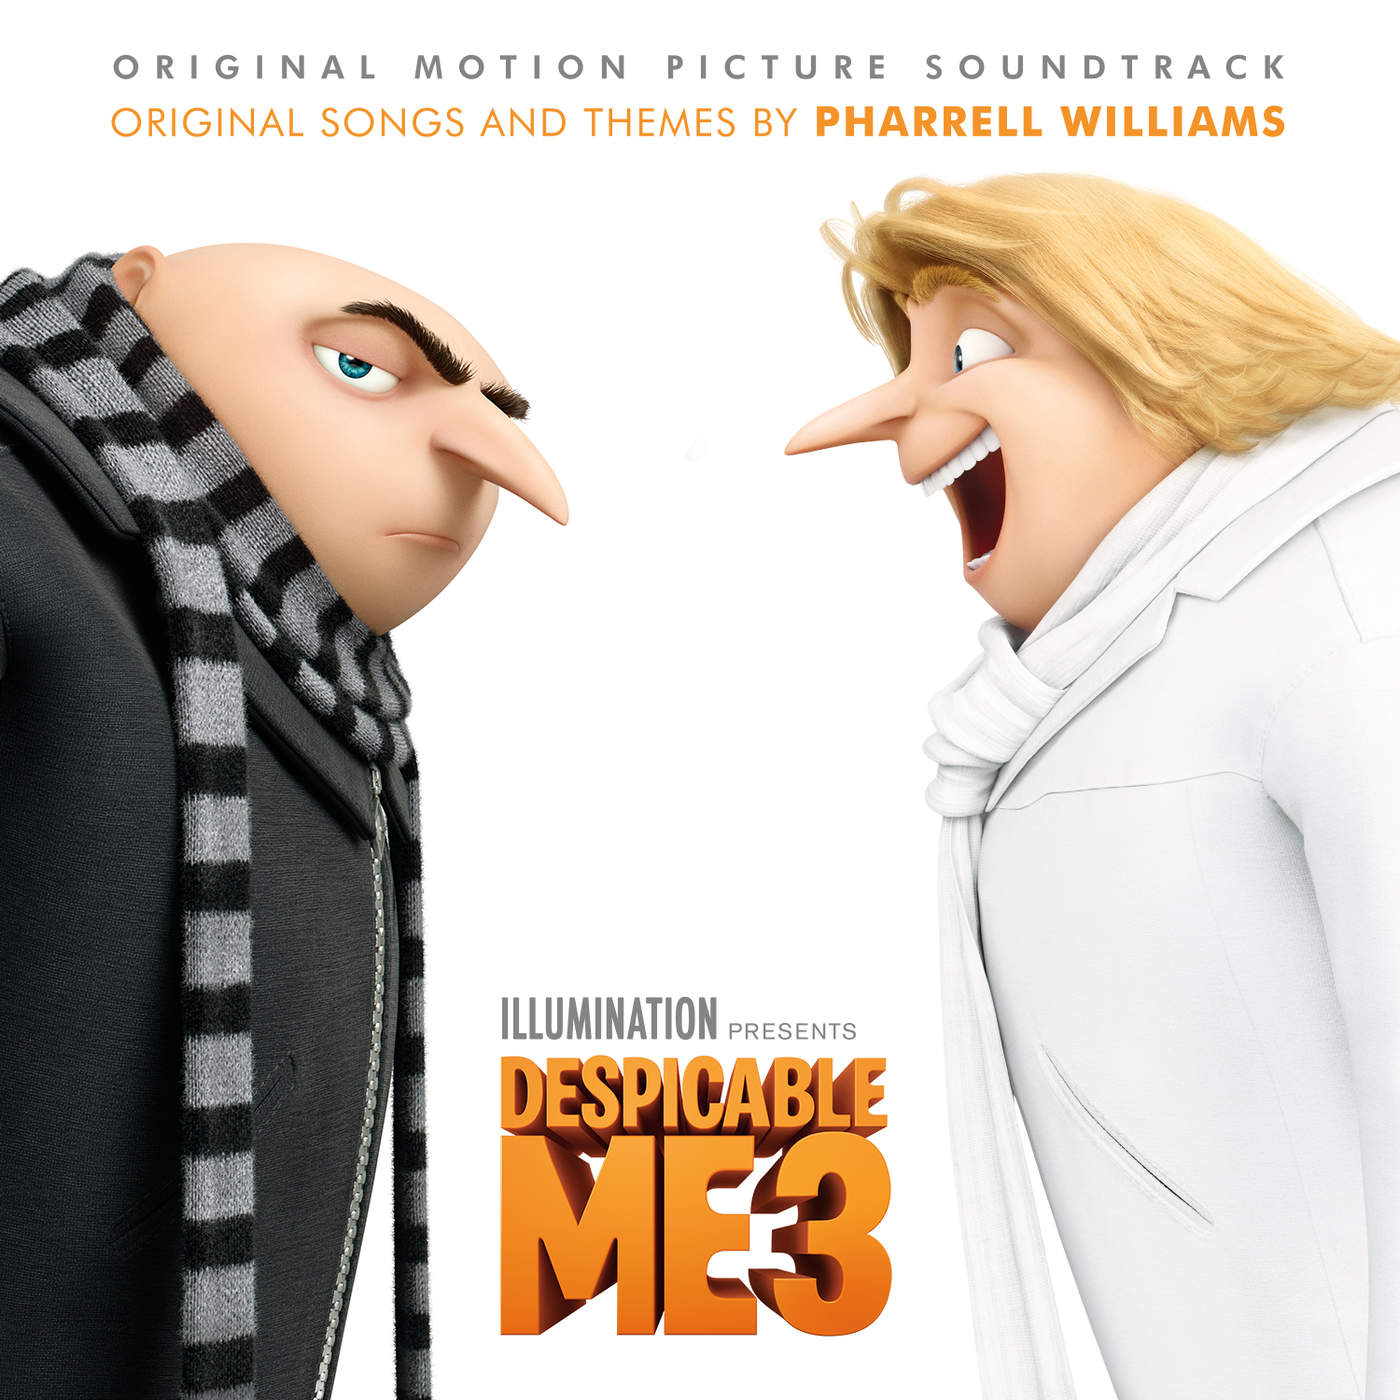 فیلم انیمیشن despicable me 3 - yellow light